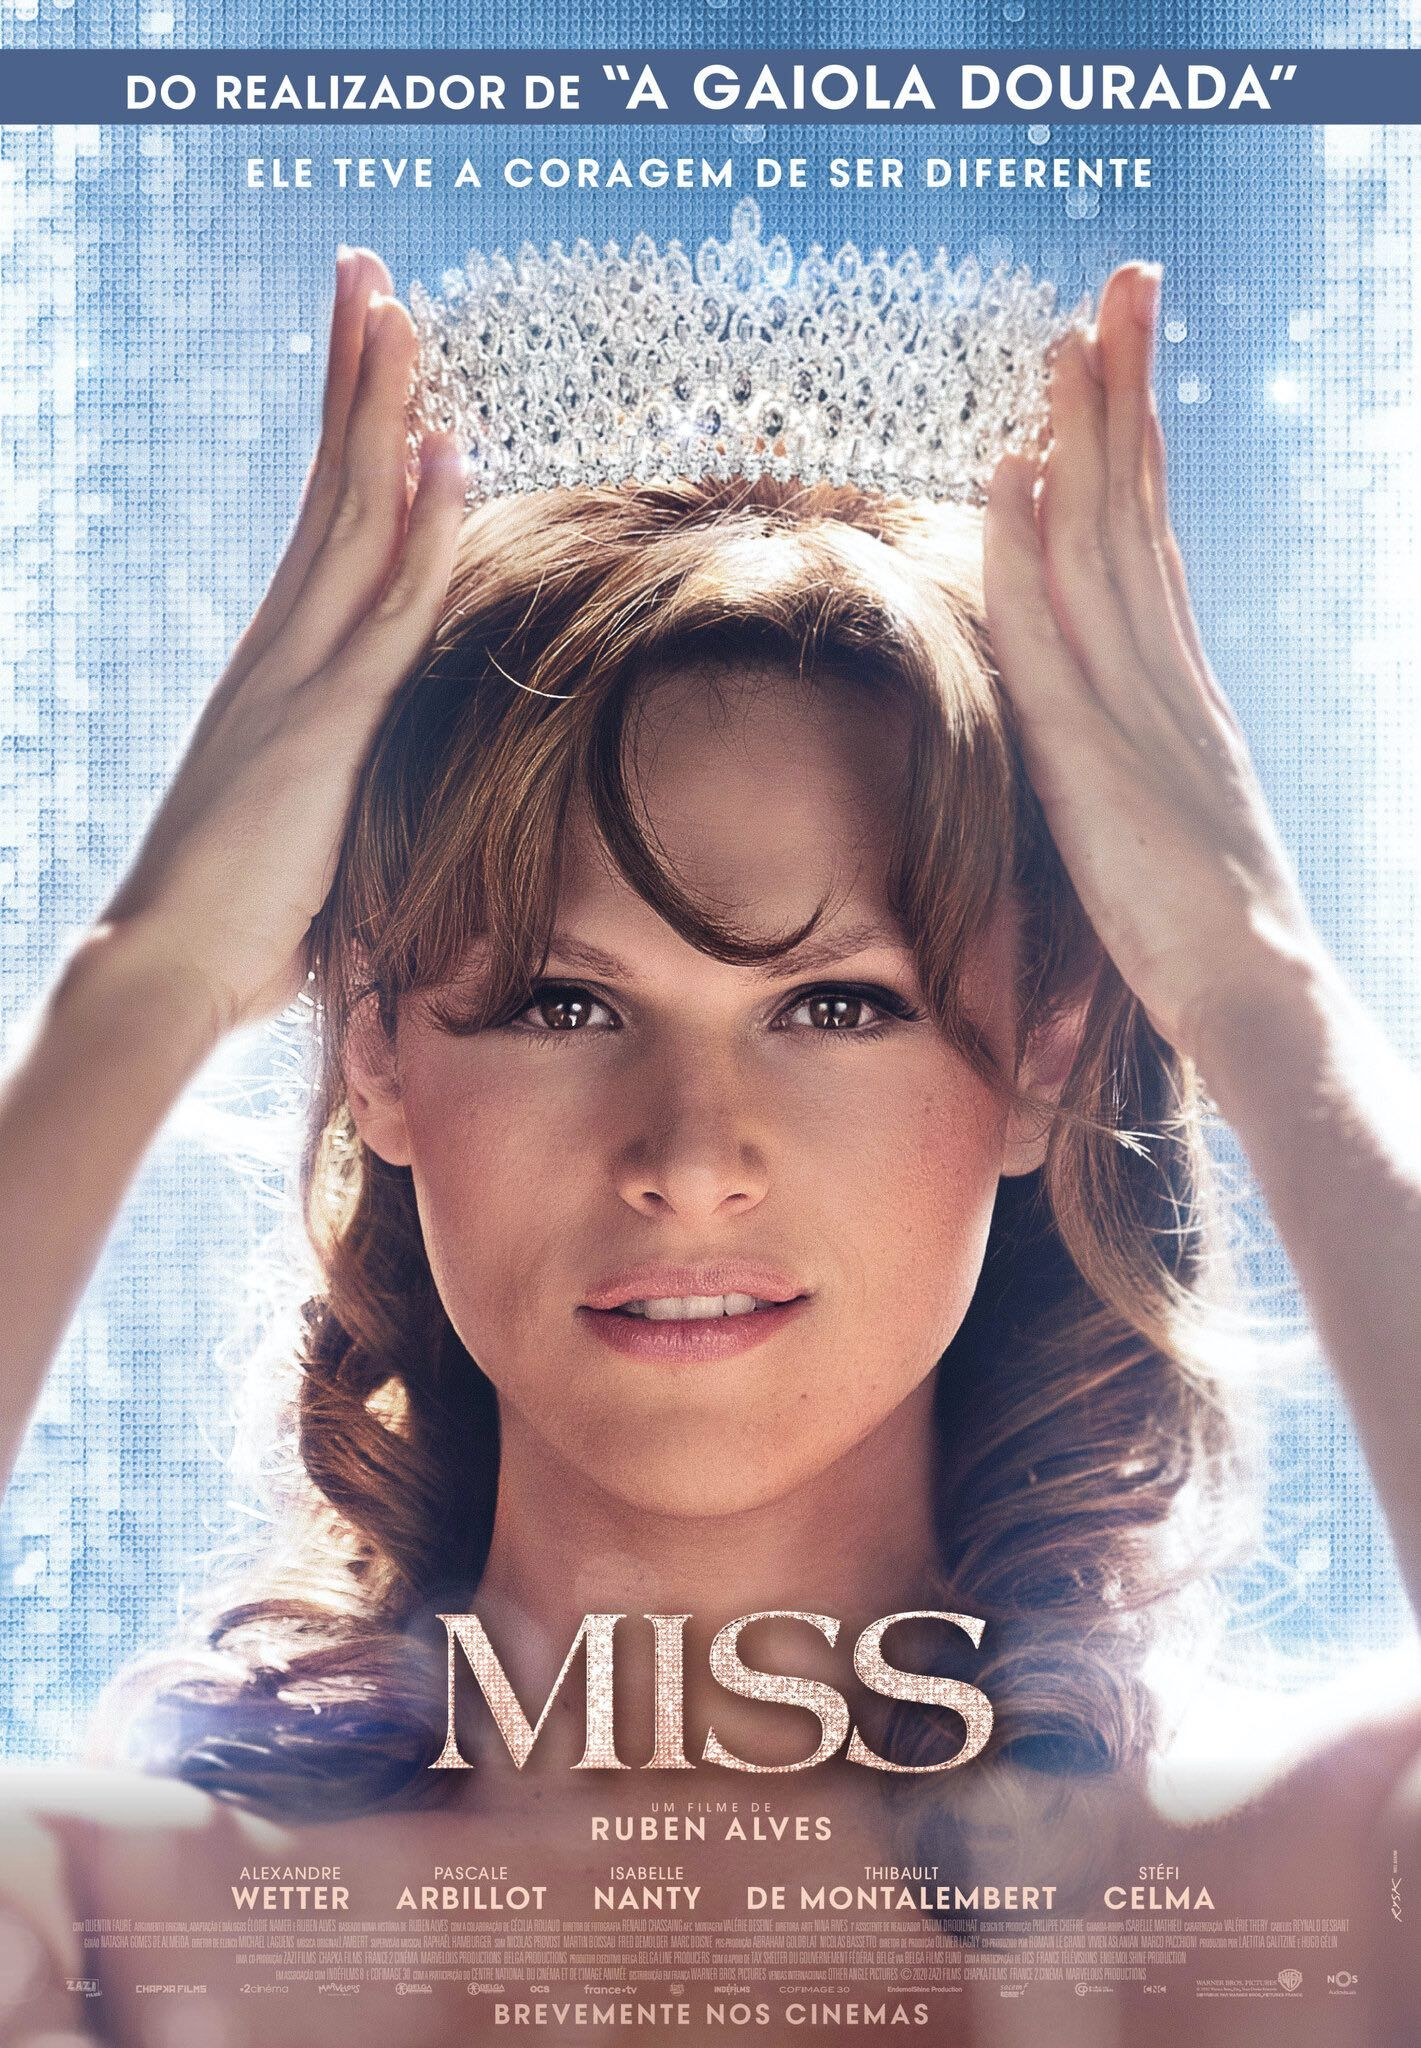 Miss-Ruben-Alves-2020-cartaz